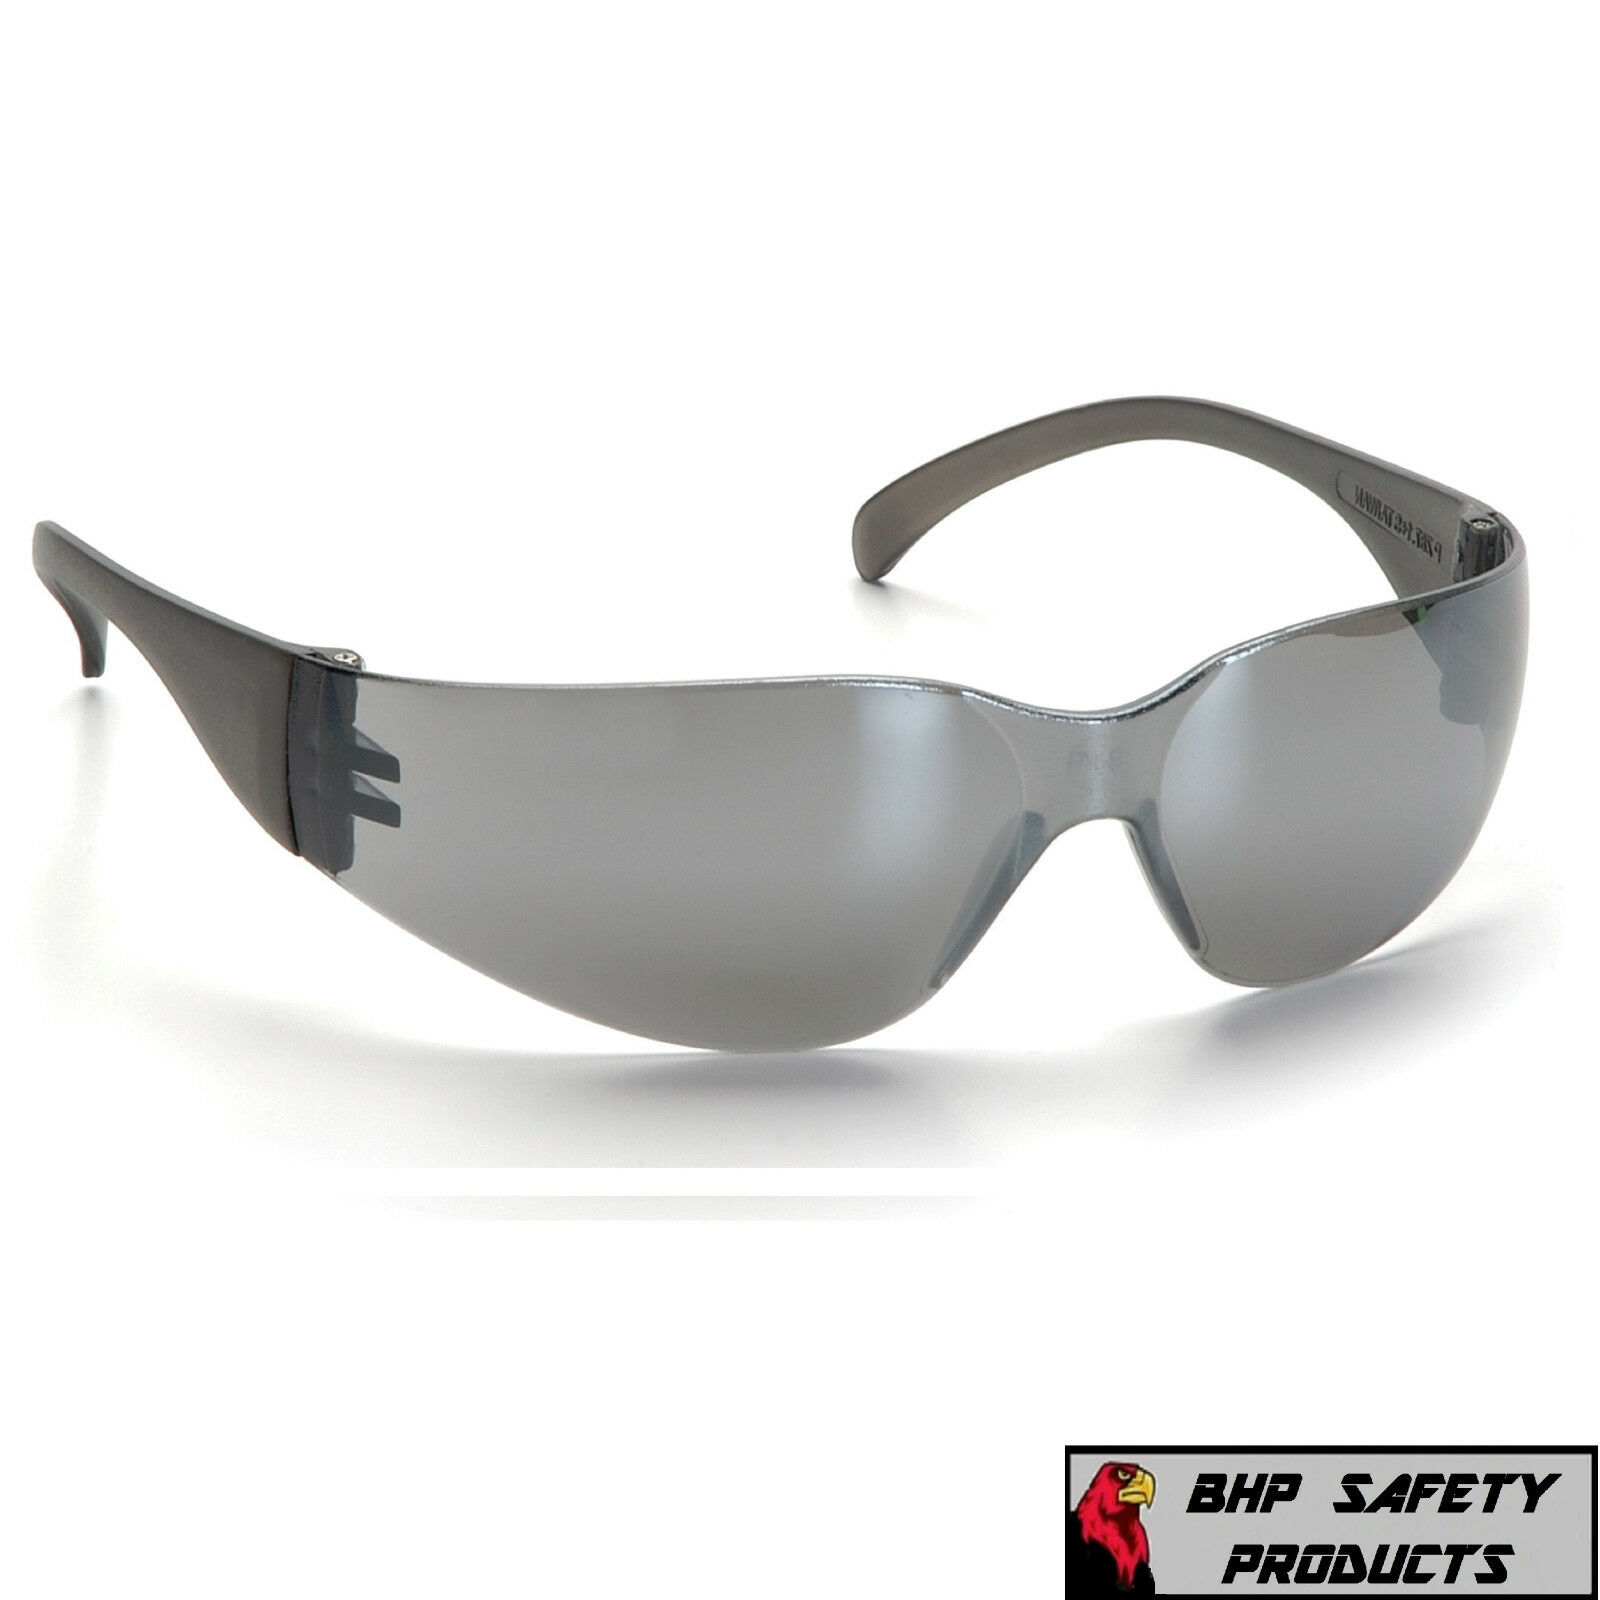 PYRAMEX INTRUDER SAFETY GLASSES ANSI Z87+ WORK EYEWEAR - LIGHTWEIGHT, SUNGLASSES Silver Mirror S4170S